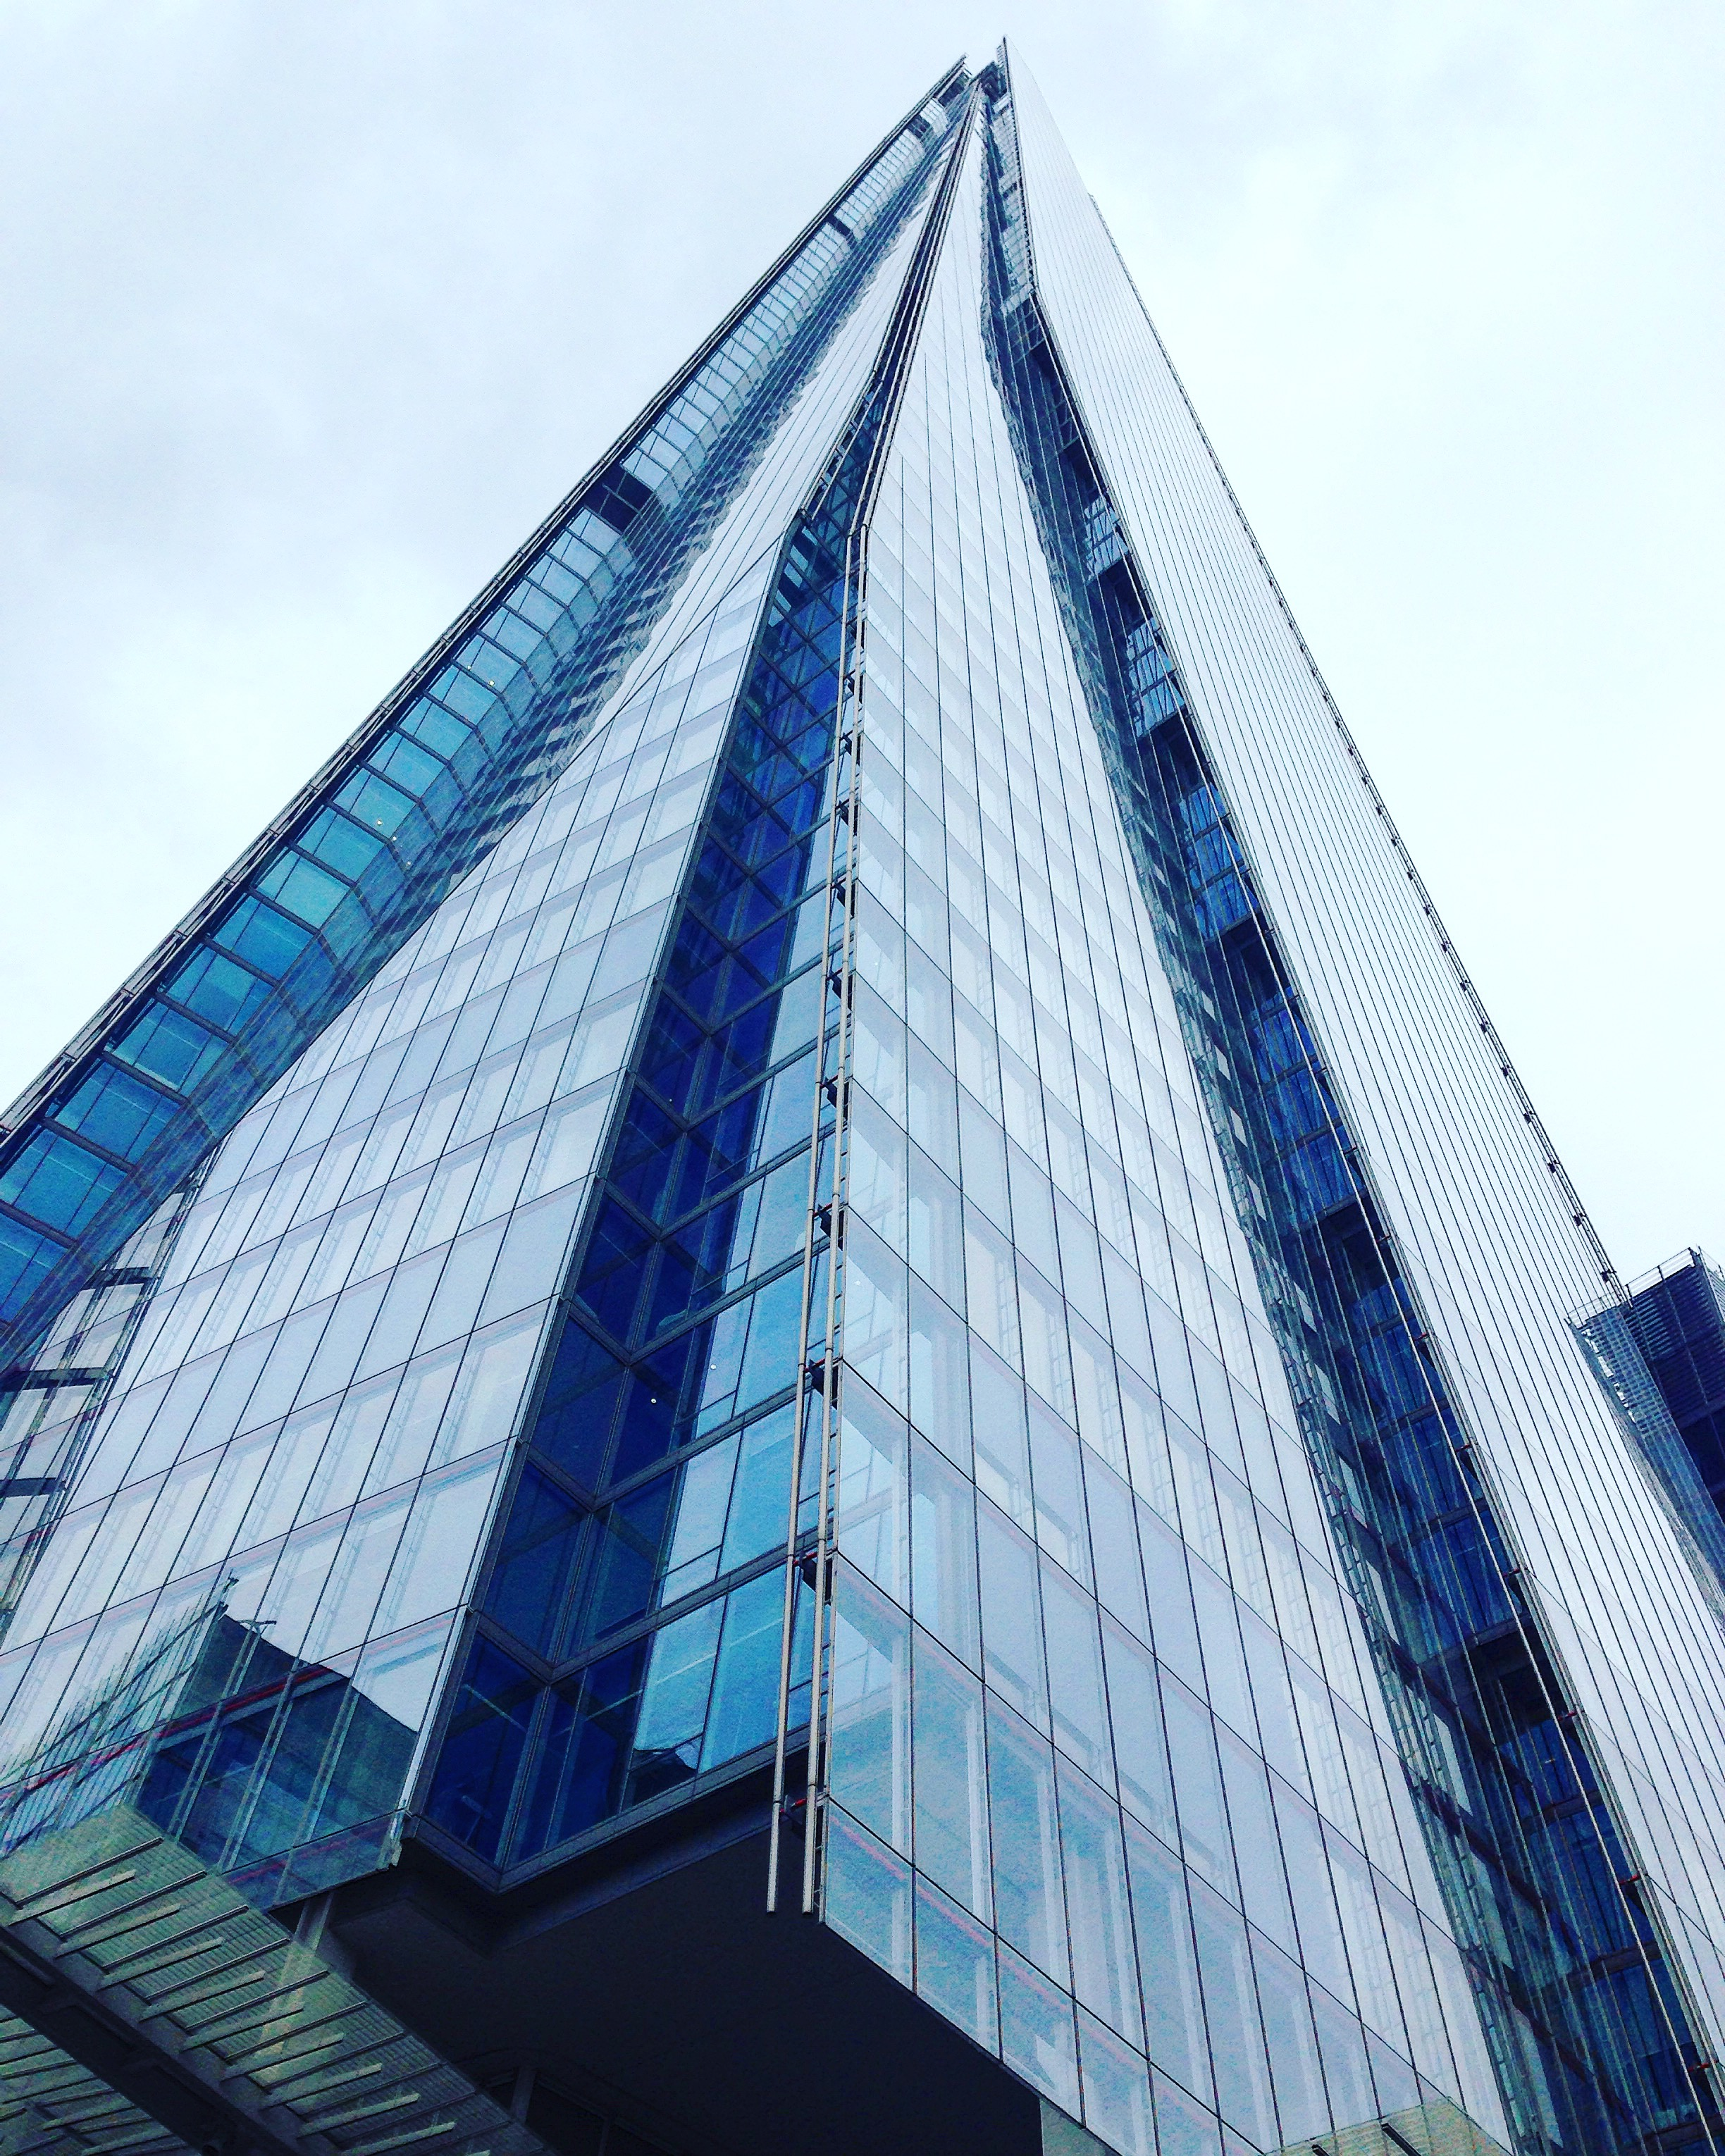 The Shard – Il Gigante di Vetro